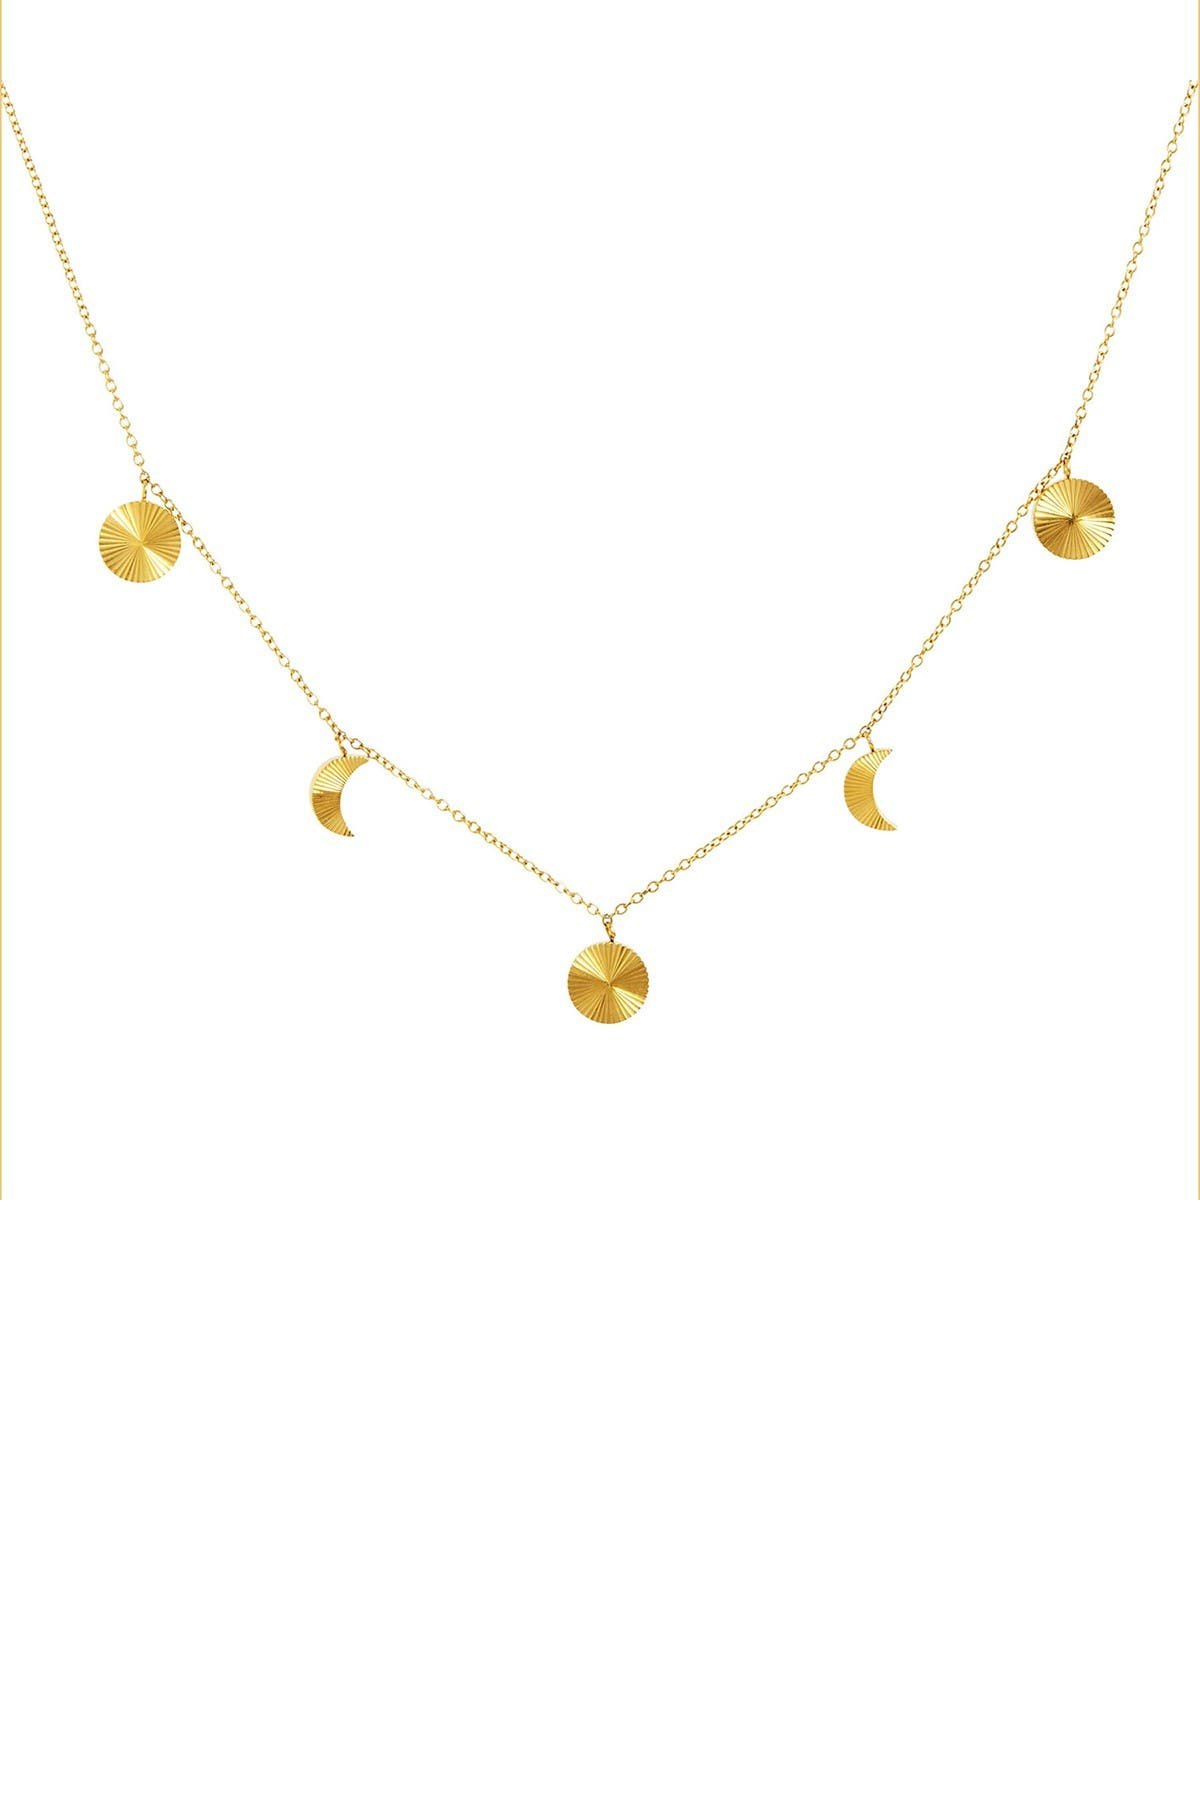 Image of Savvy Cie 14K Gold Plated Charm Necklace